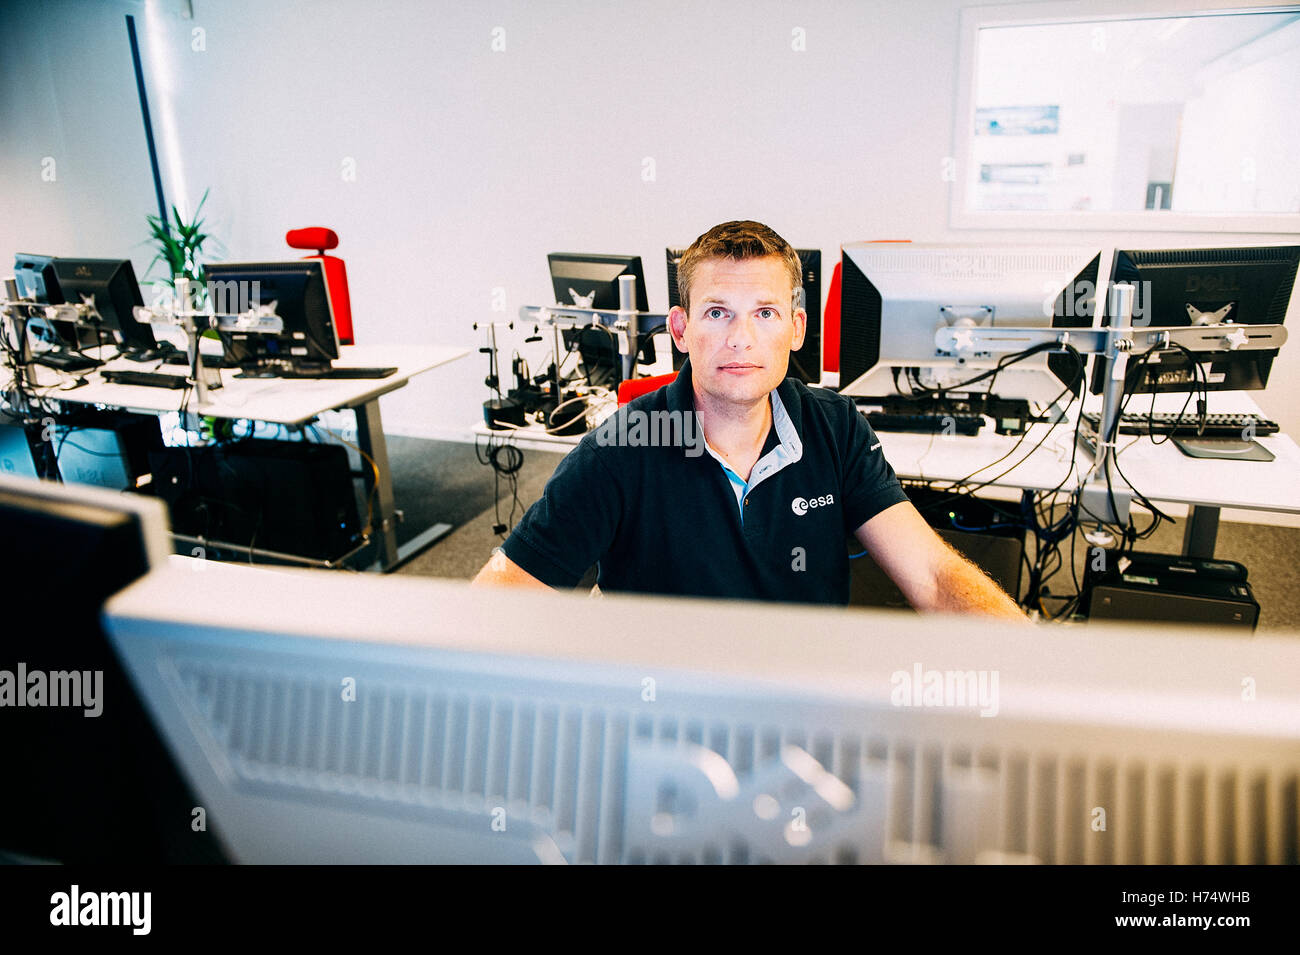 The Danish astronaut Andreas Mogensen was selected to become the first Danish astronaut by the European Space Agency. - Stock Image